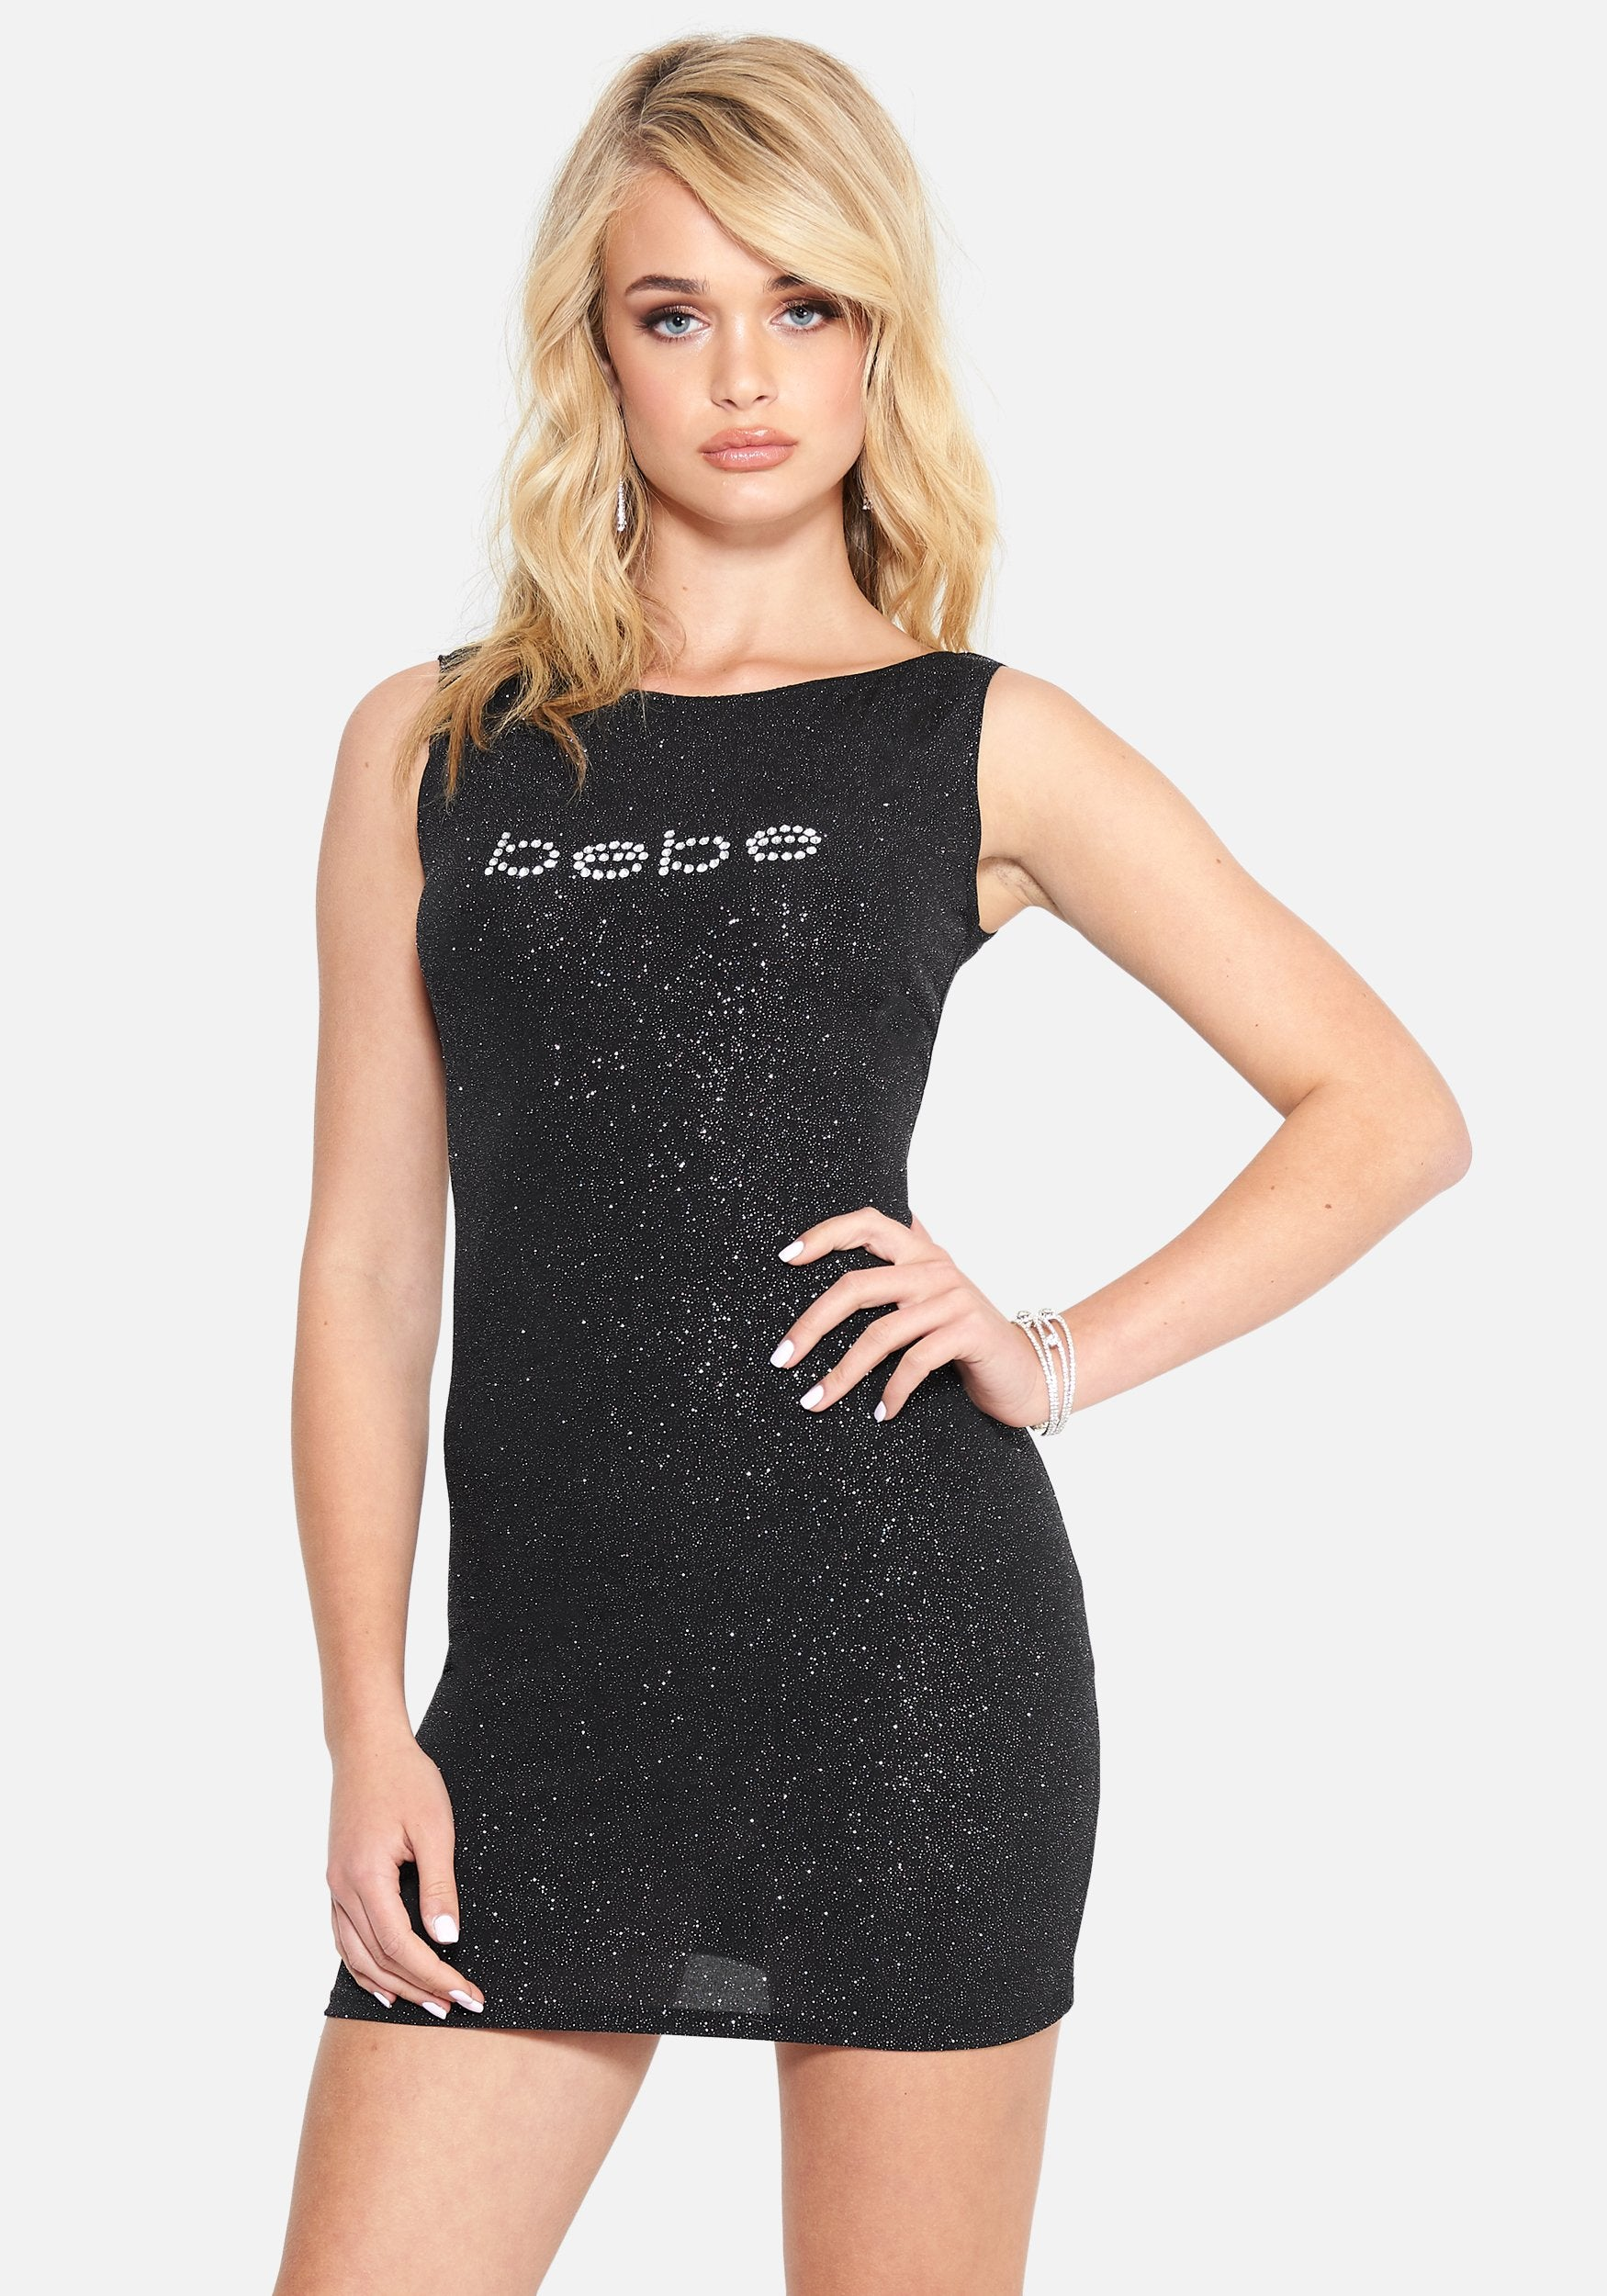 Bebe Women's Glitter Logo Sleevless Dress, Size XXS in Black Spandex